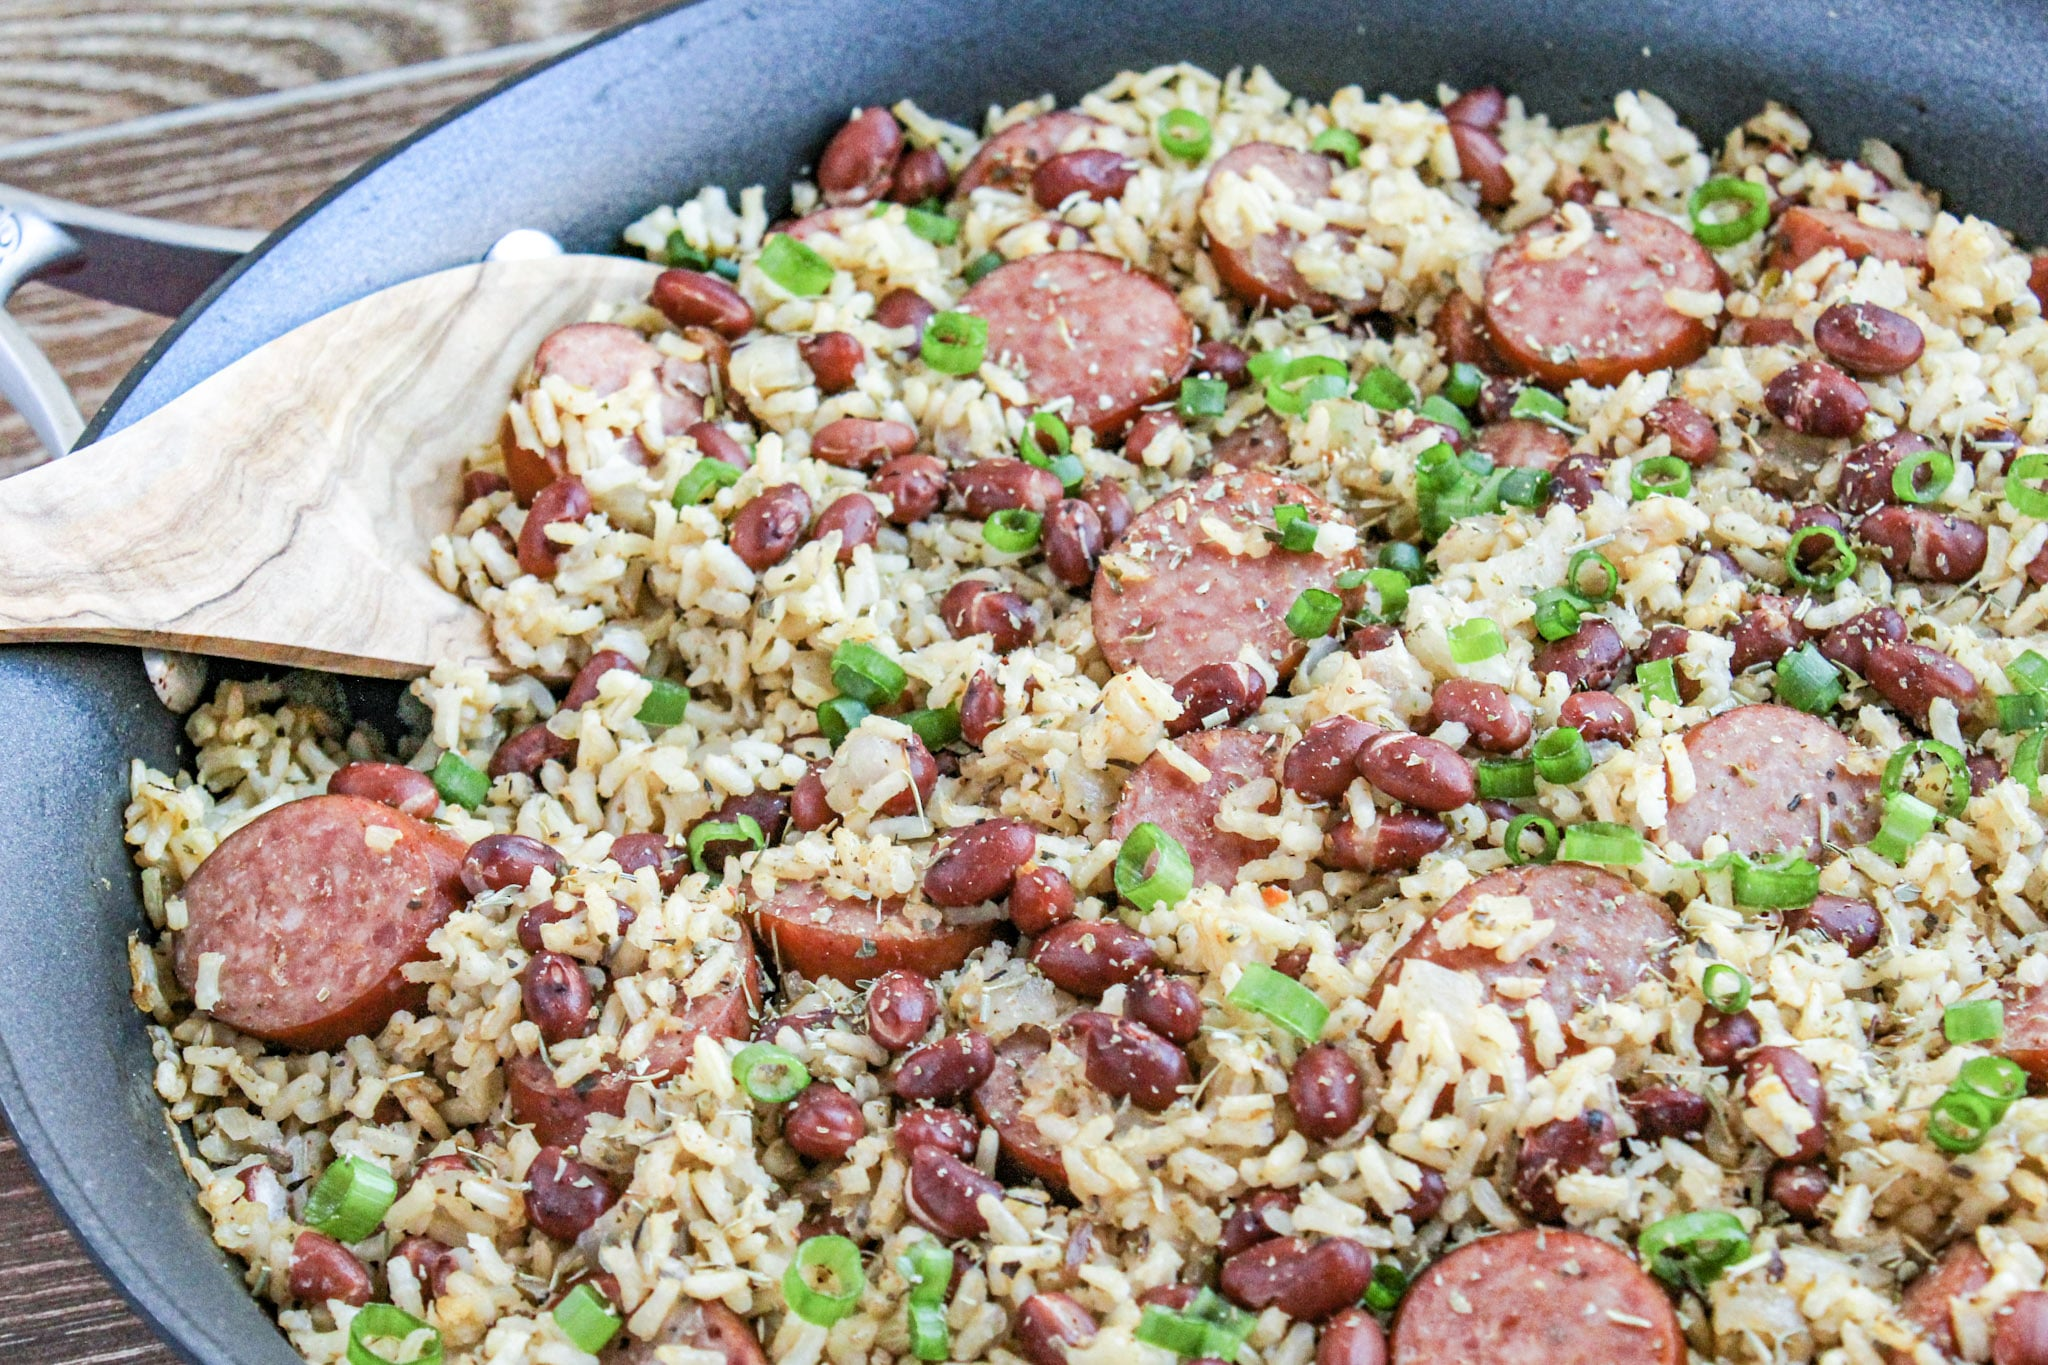 close up photo of red beans and rice in a skillet with wooden spoon and wooden background